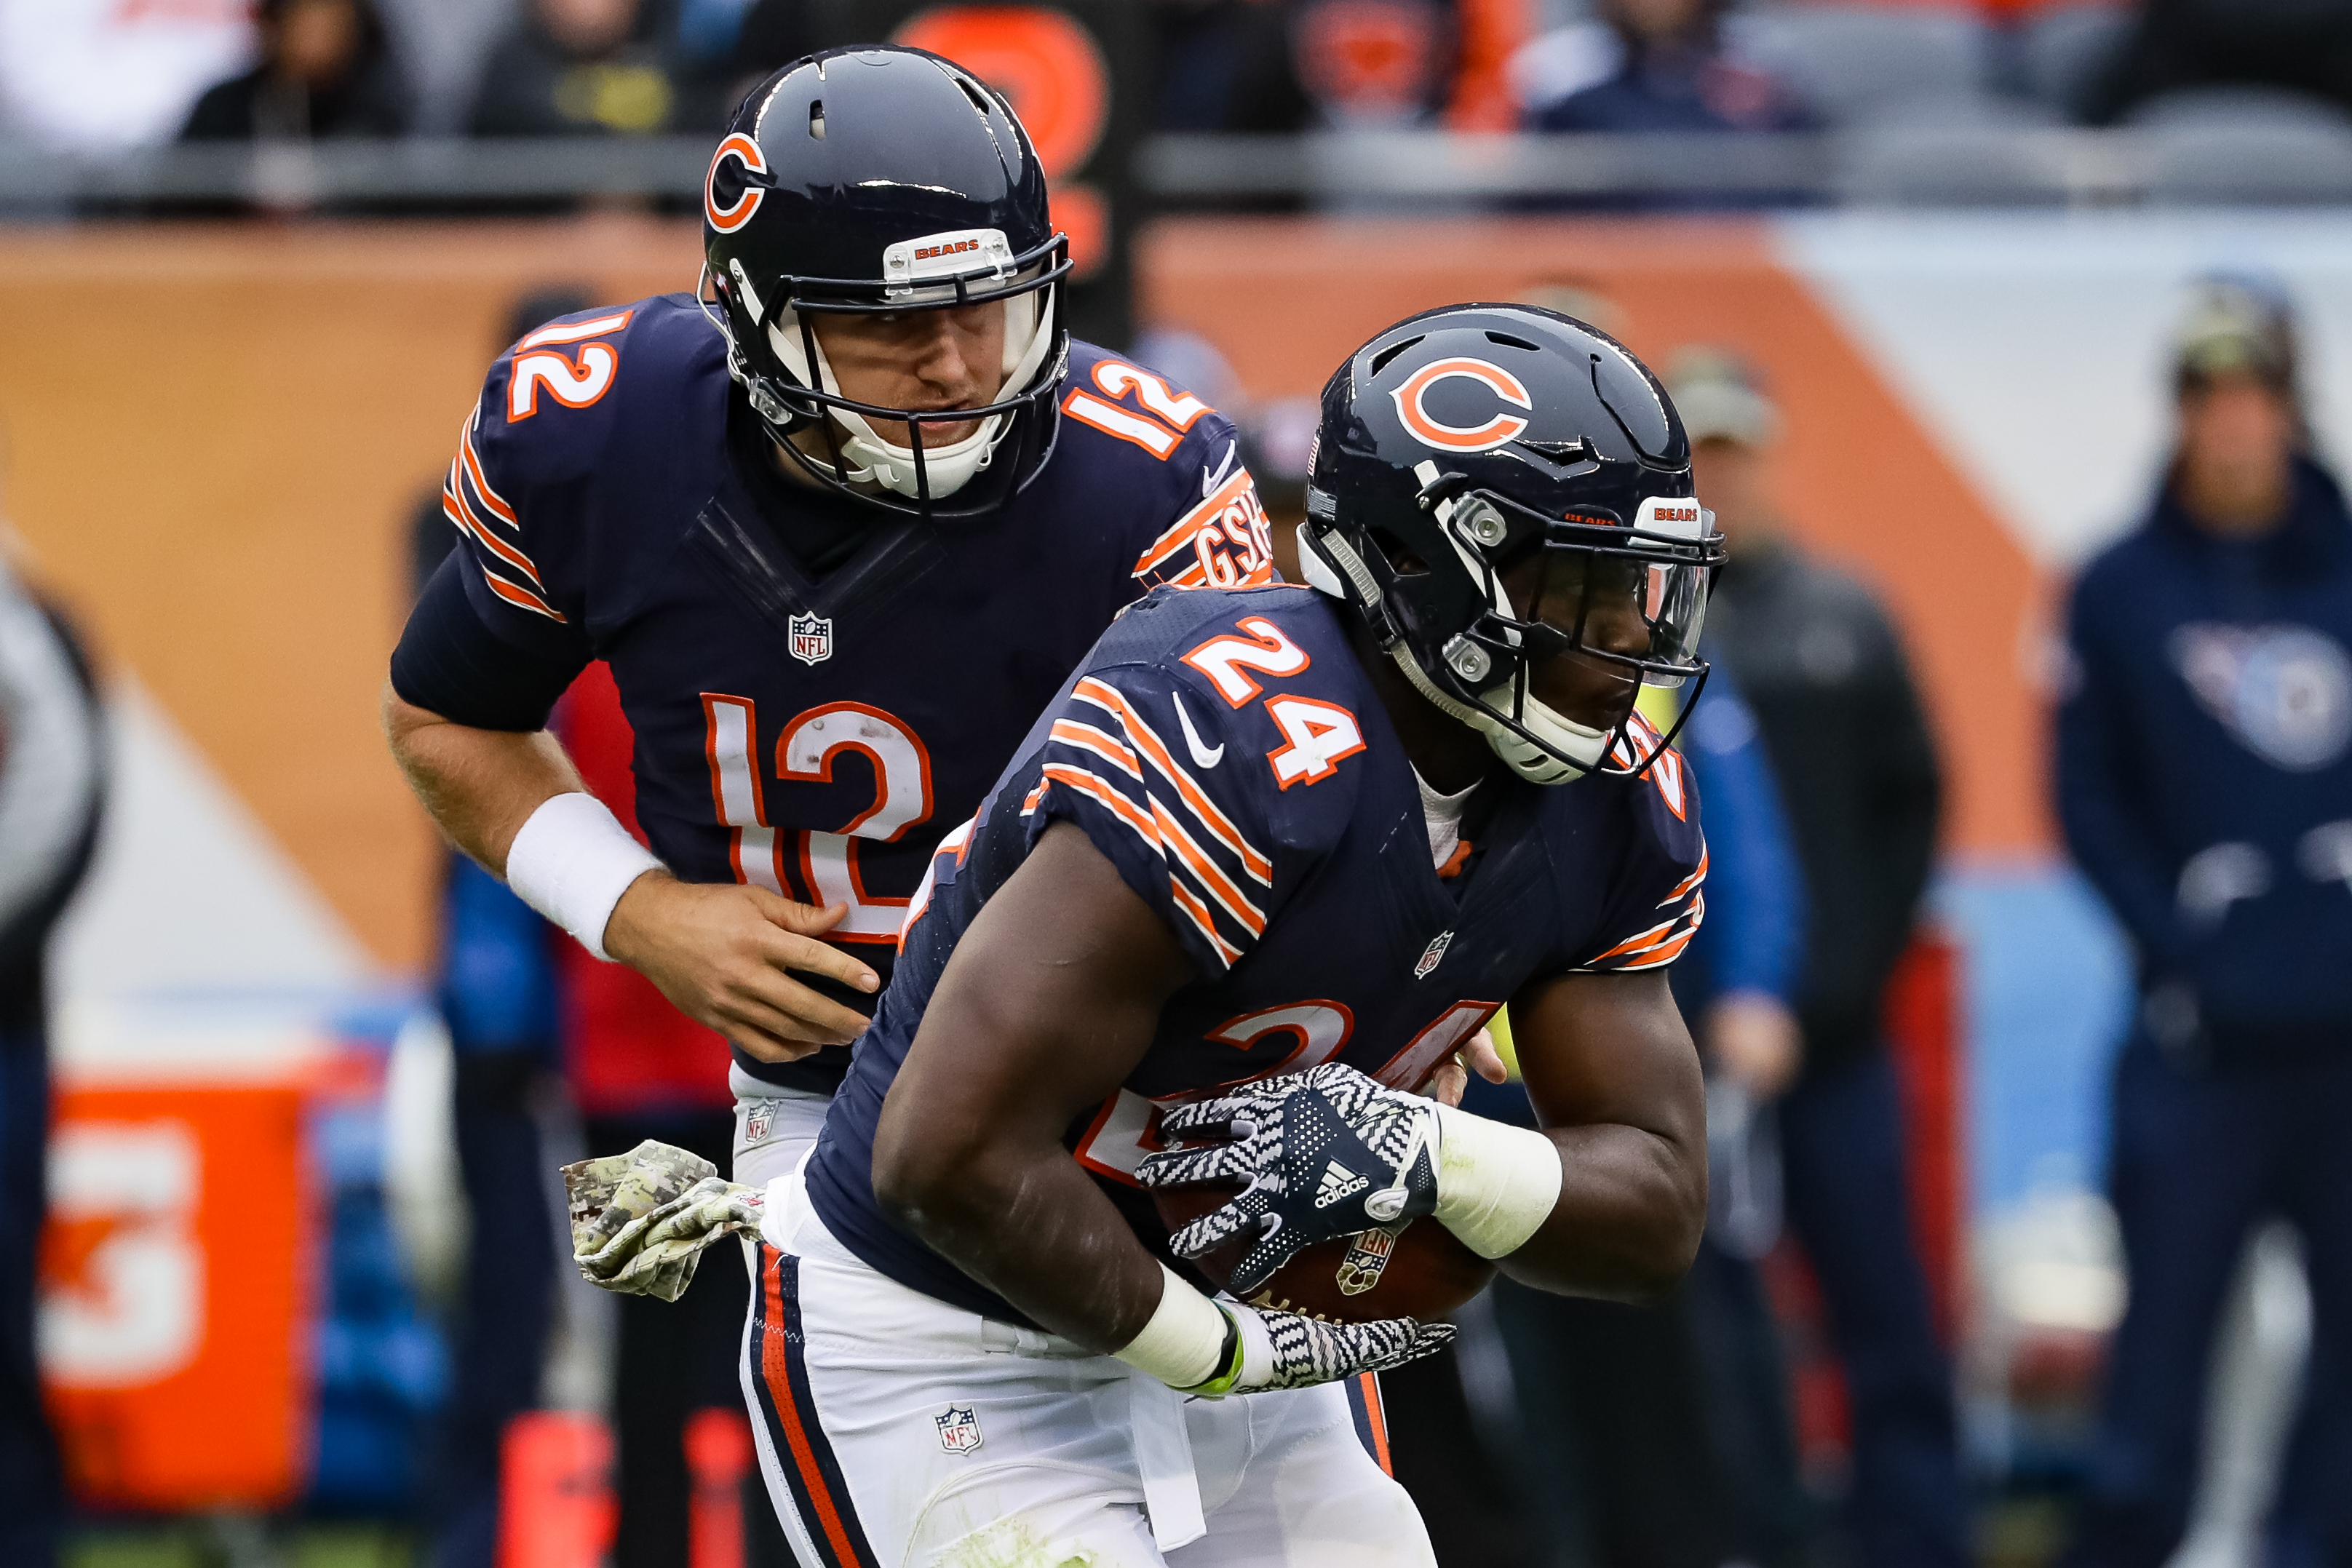 Kevin White's injury overshadows impressive Bears debut by Mike Glennon